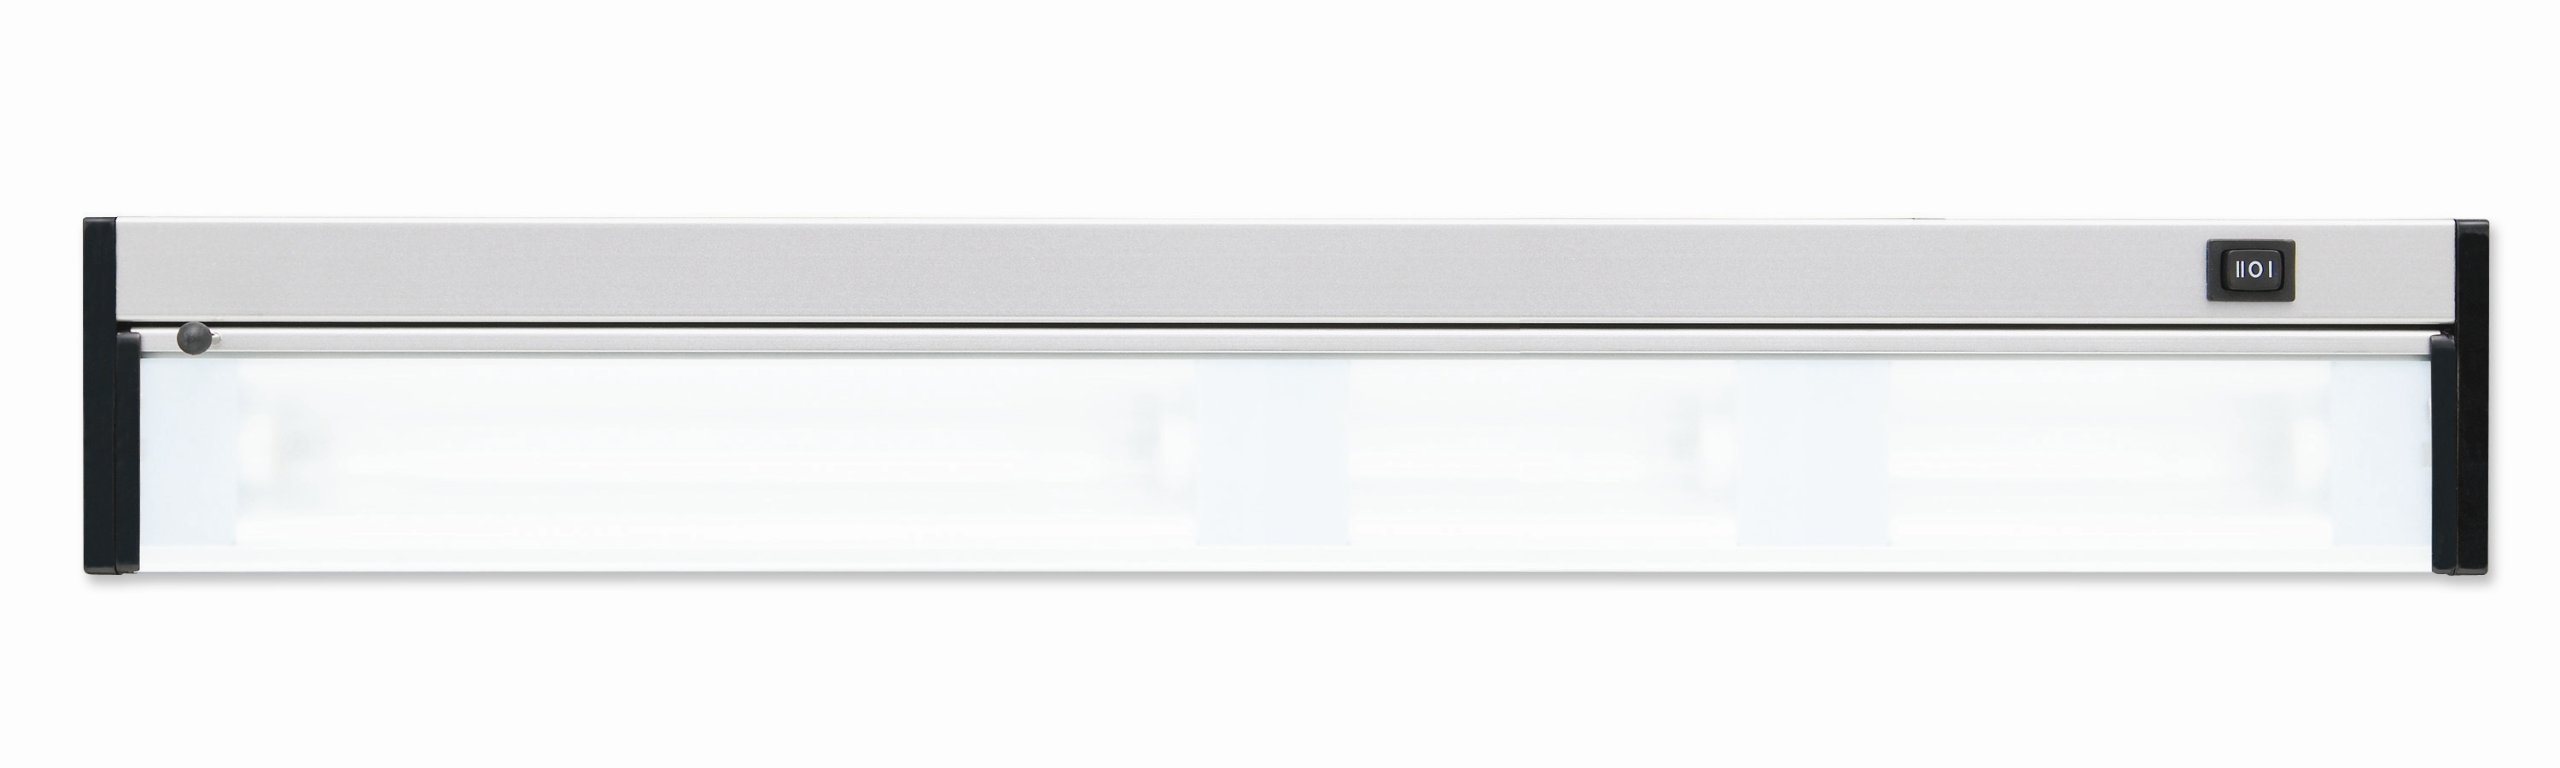 Good Earth Lighting 24-inch Xenon Convertible Under Cabinet Light Bar, Stainless Steel